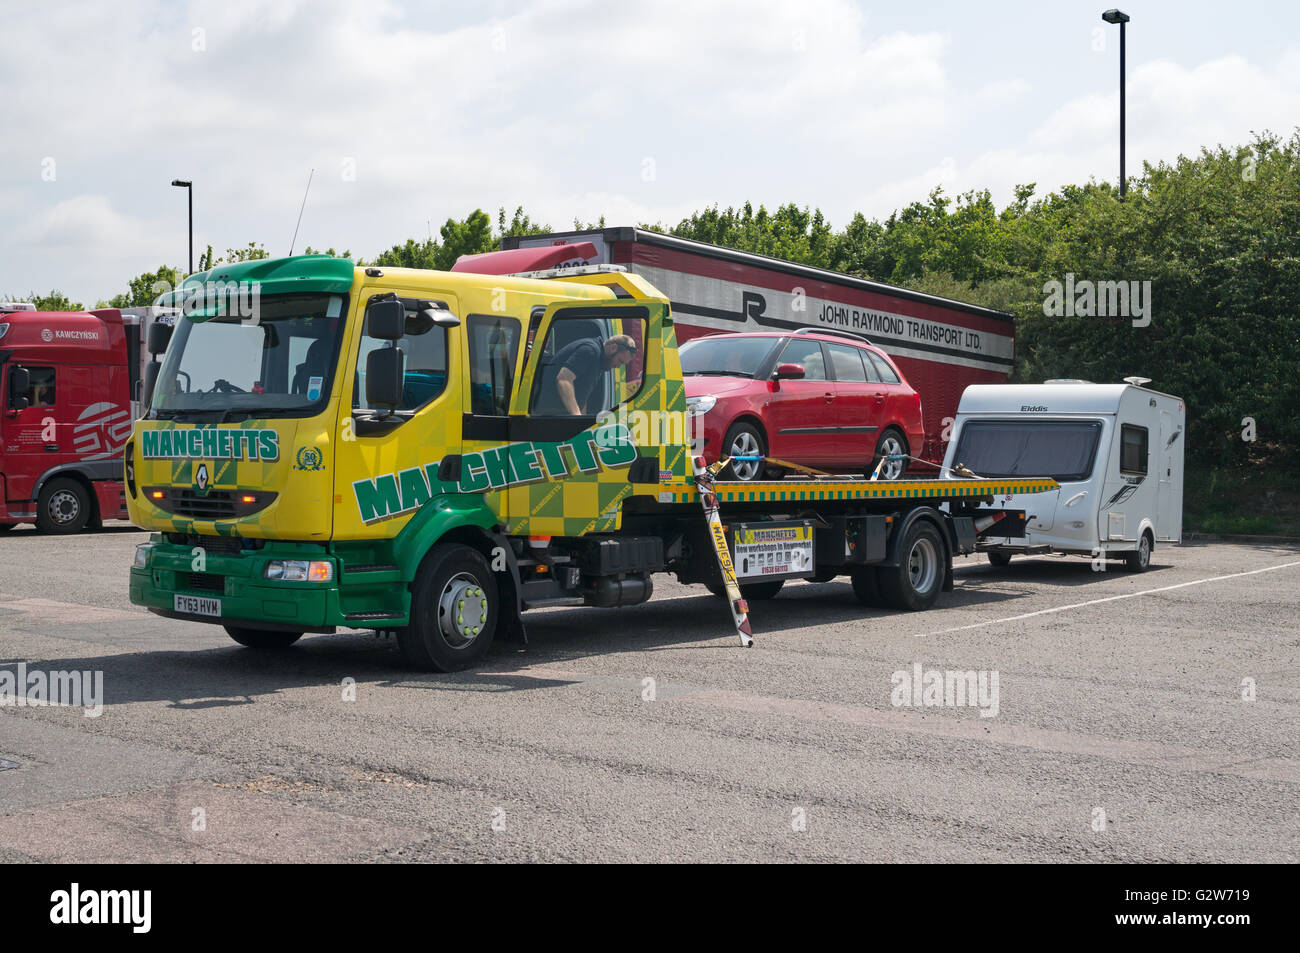 Broken down car on Manchetts Renault slidebed rescue truck with caravan in tow, Motorway service station, England, - Stock Image